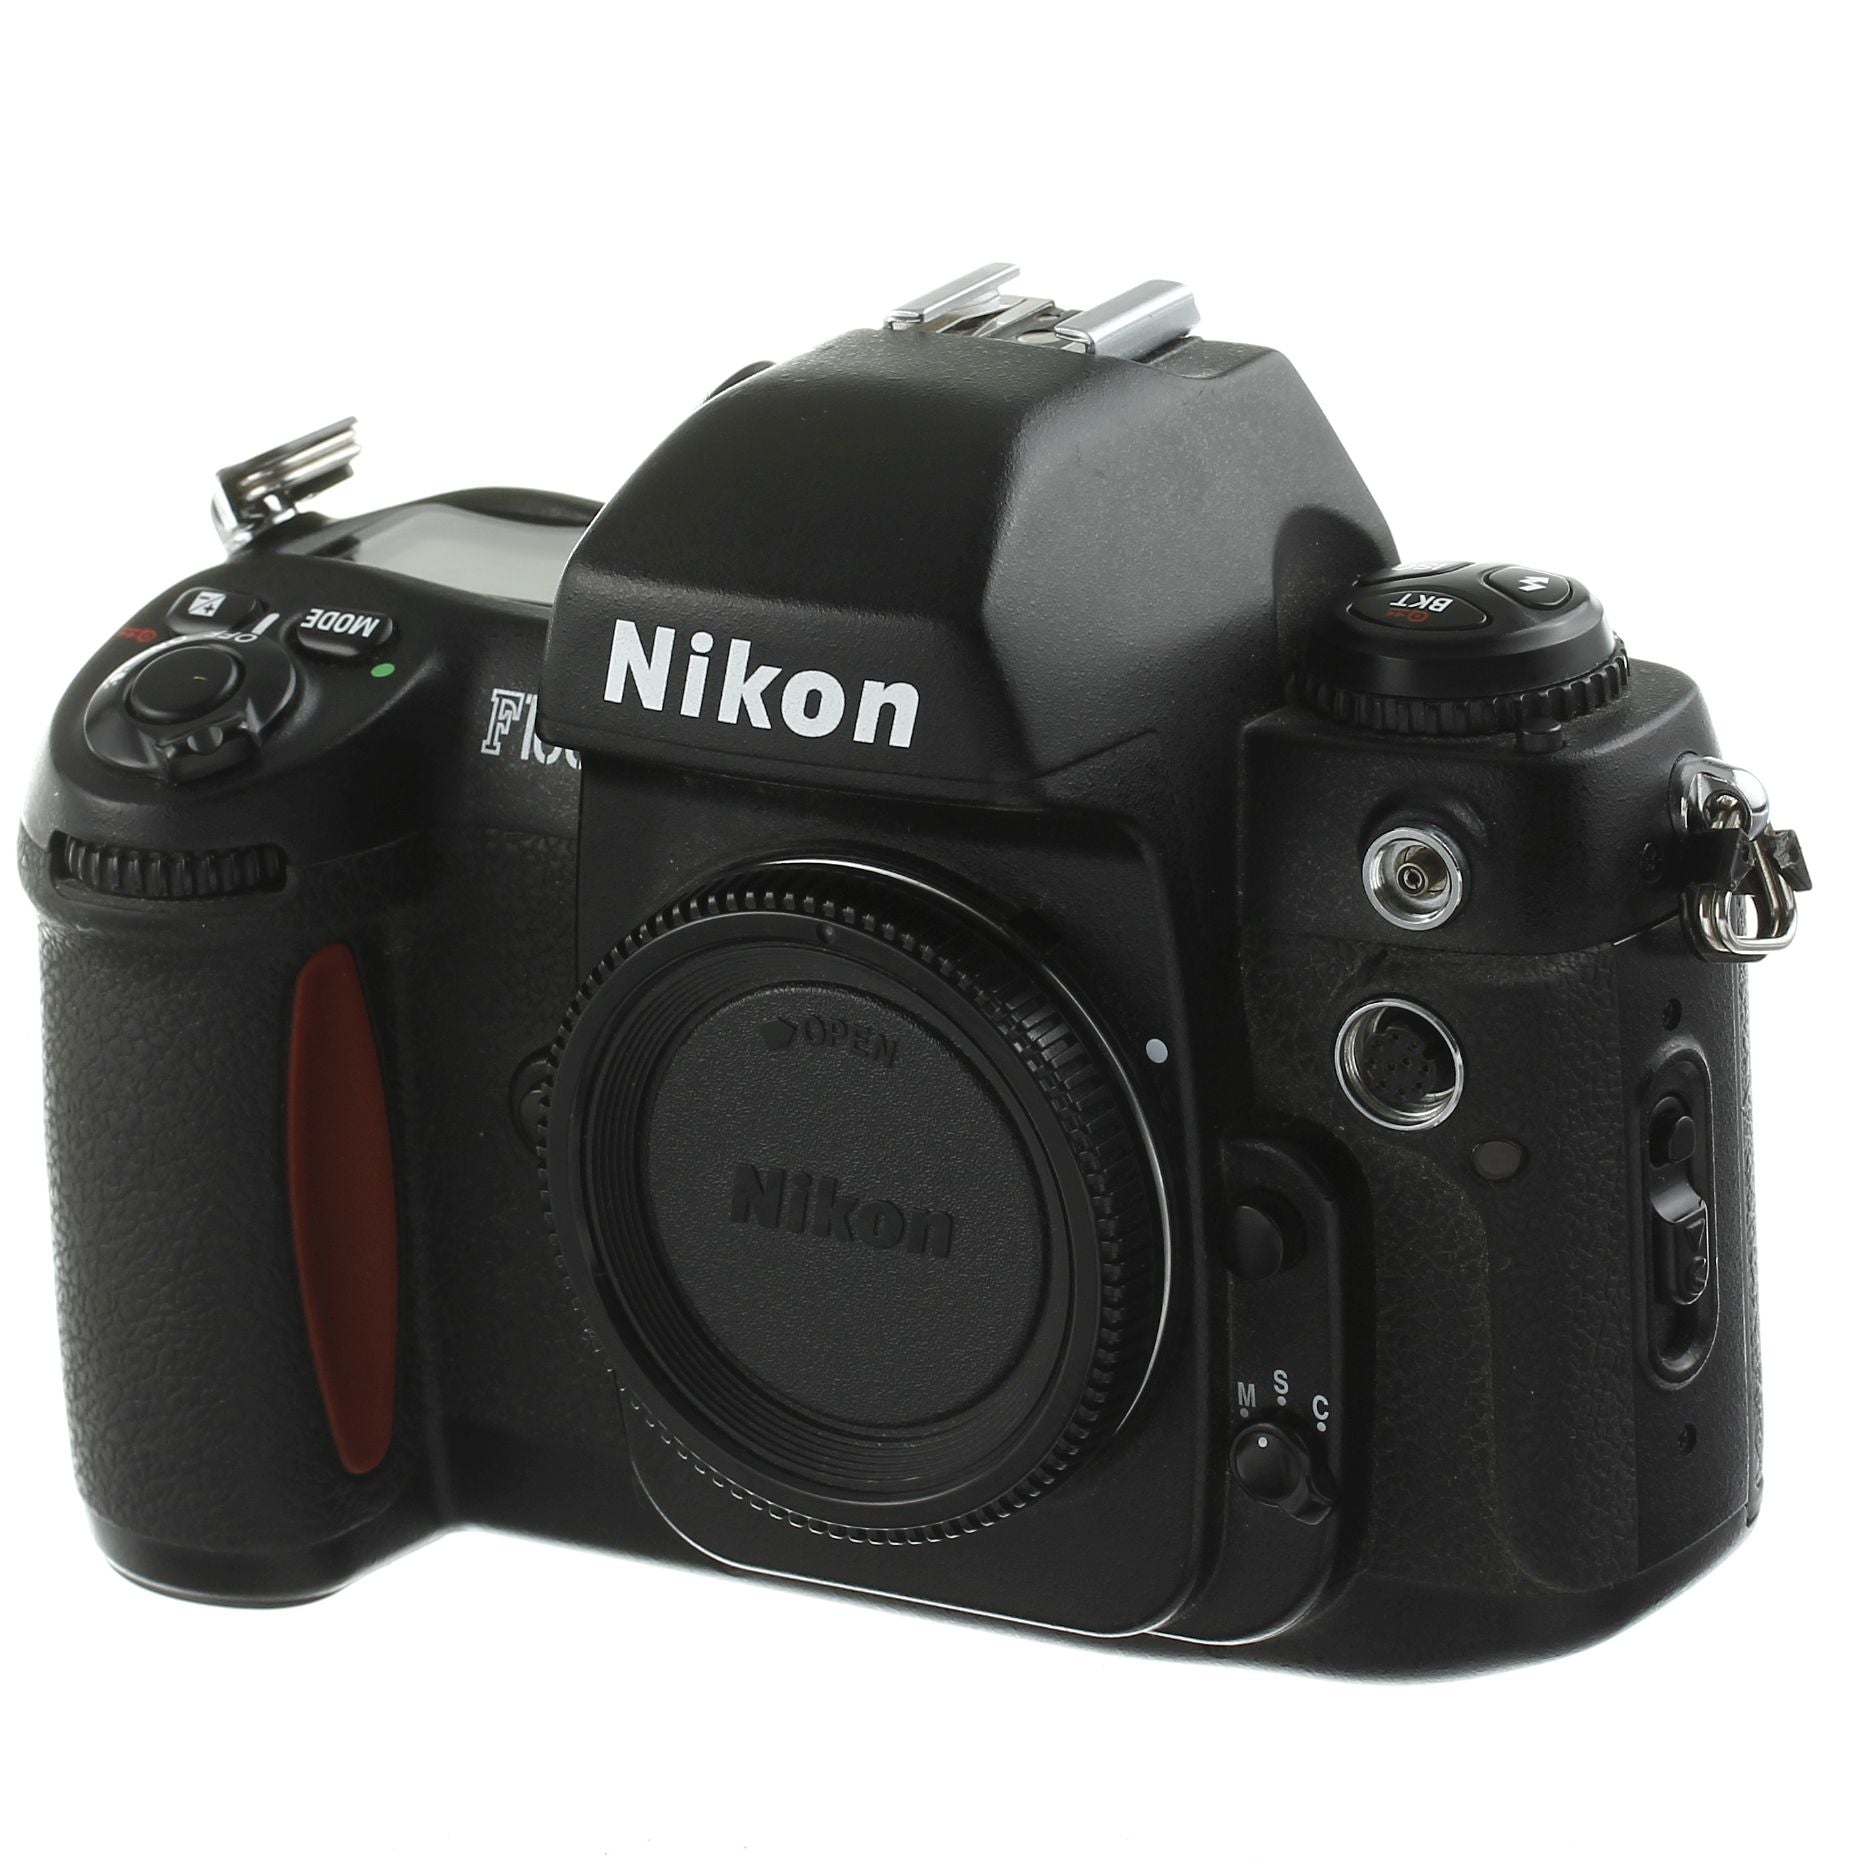 Nikon F100 Film Camera Body US Model